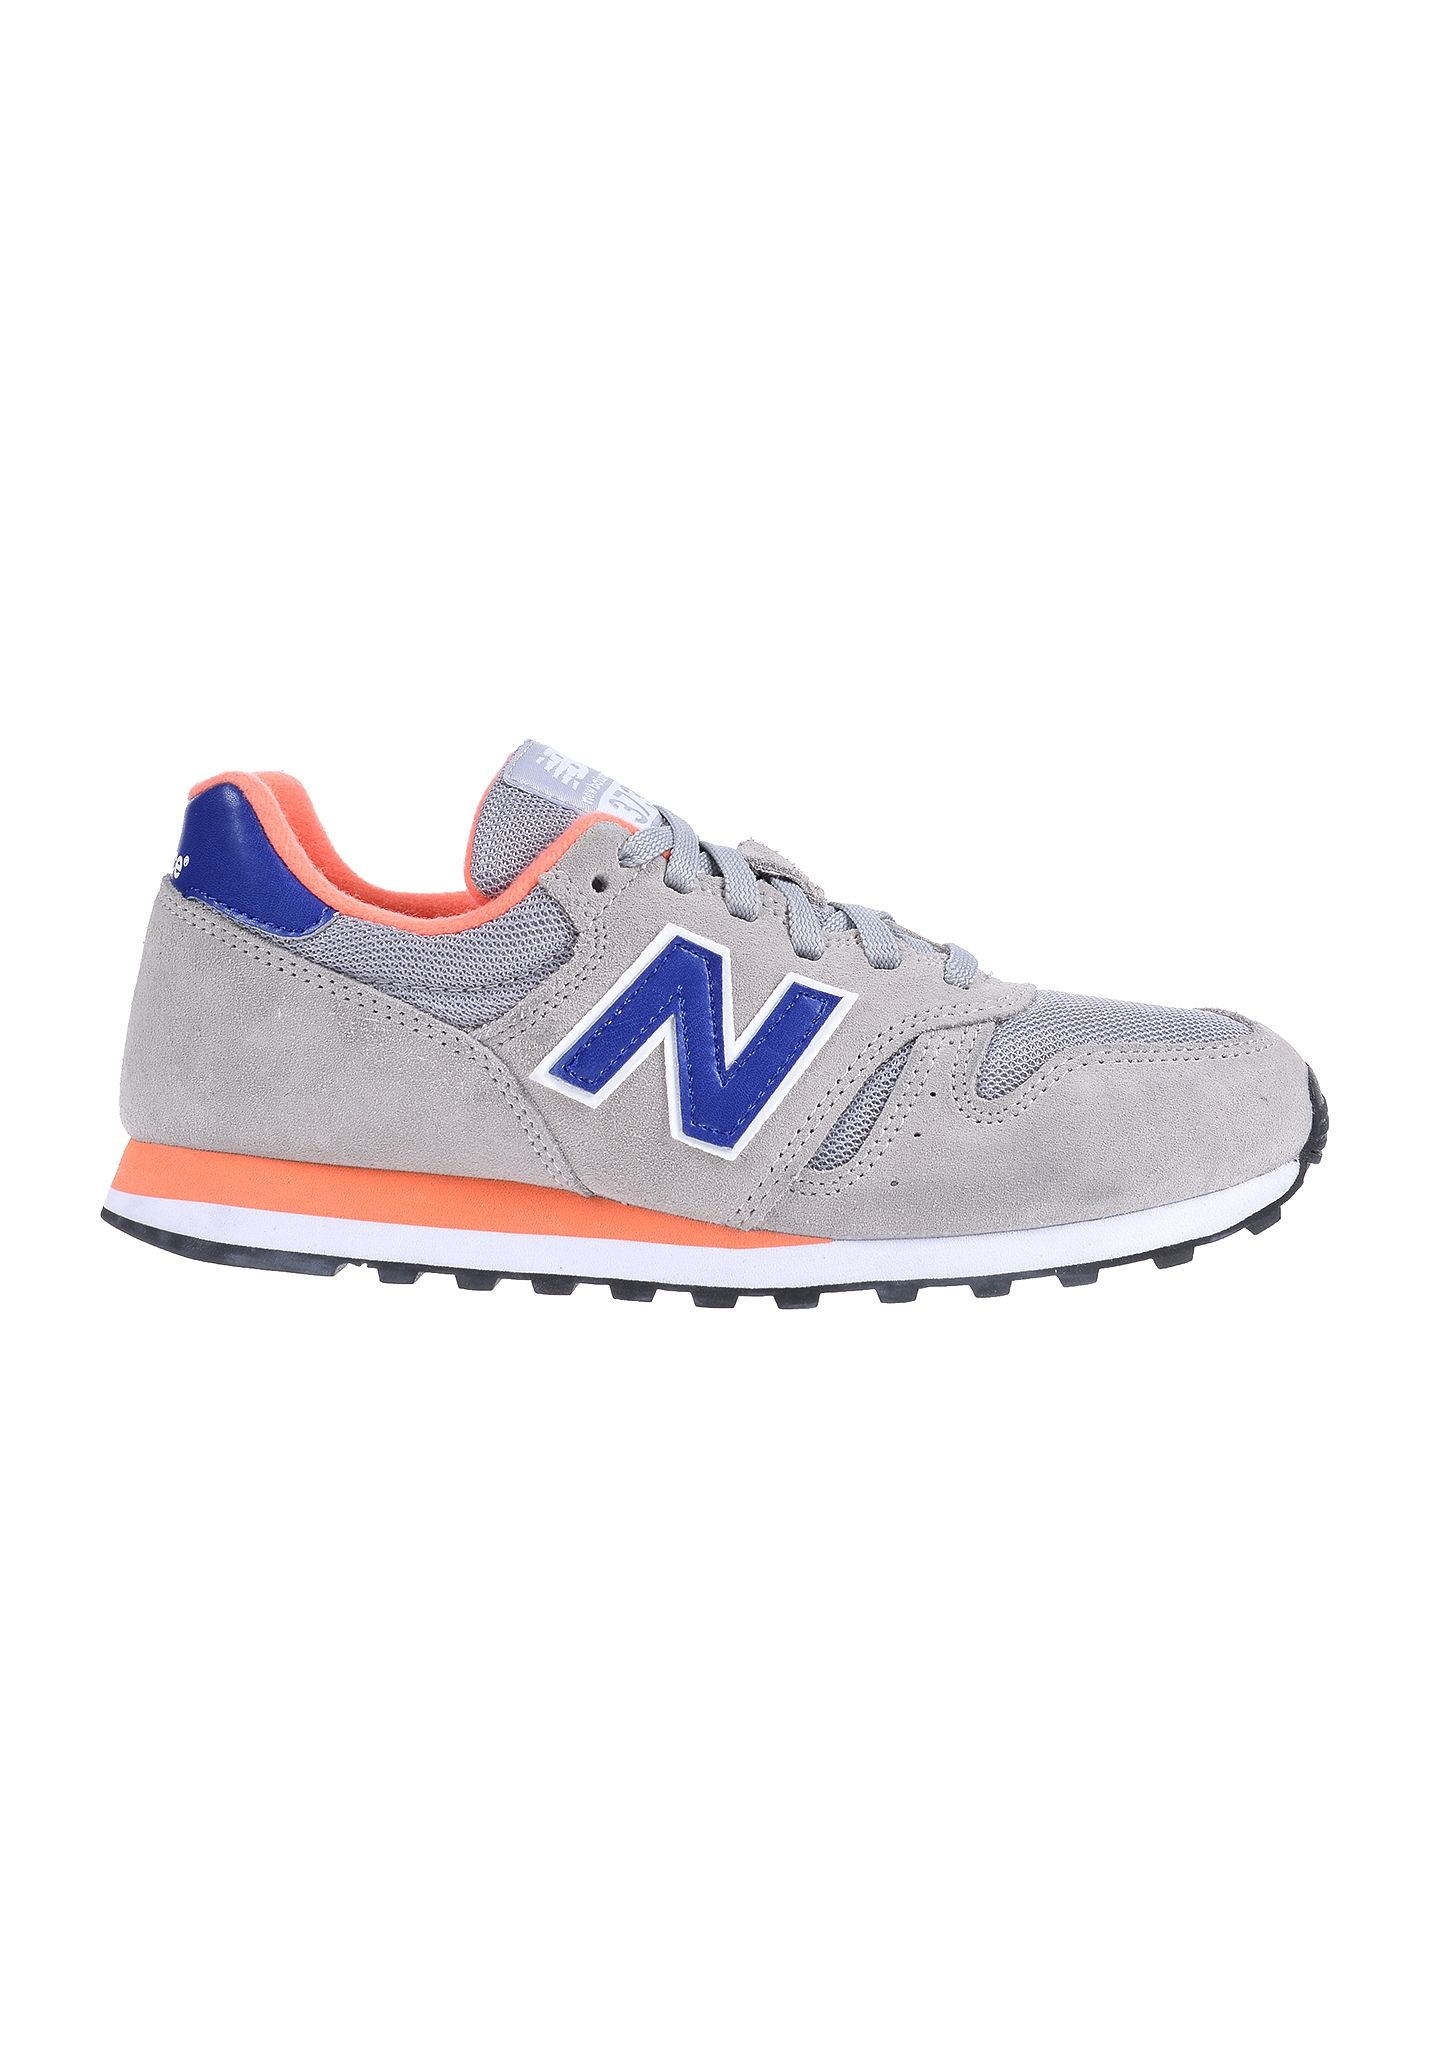 oveja salto perdón  grey and pink new balance 373, New Balance Men's Slip-Resistant Shoes -  Shoes For Crews